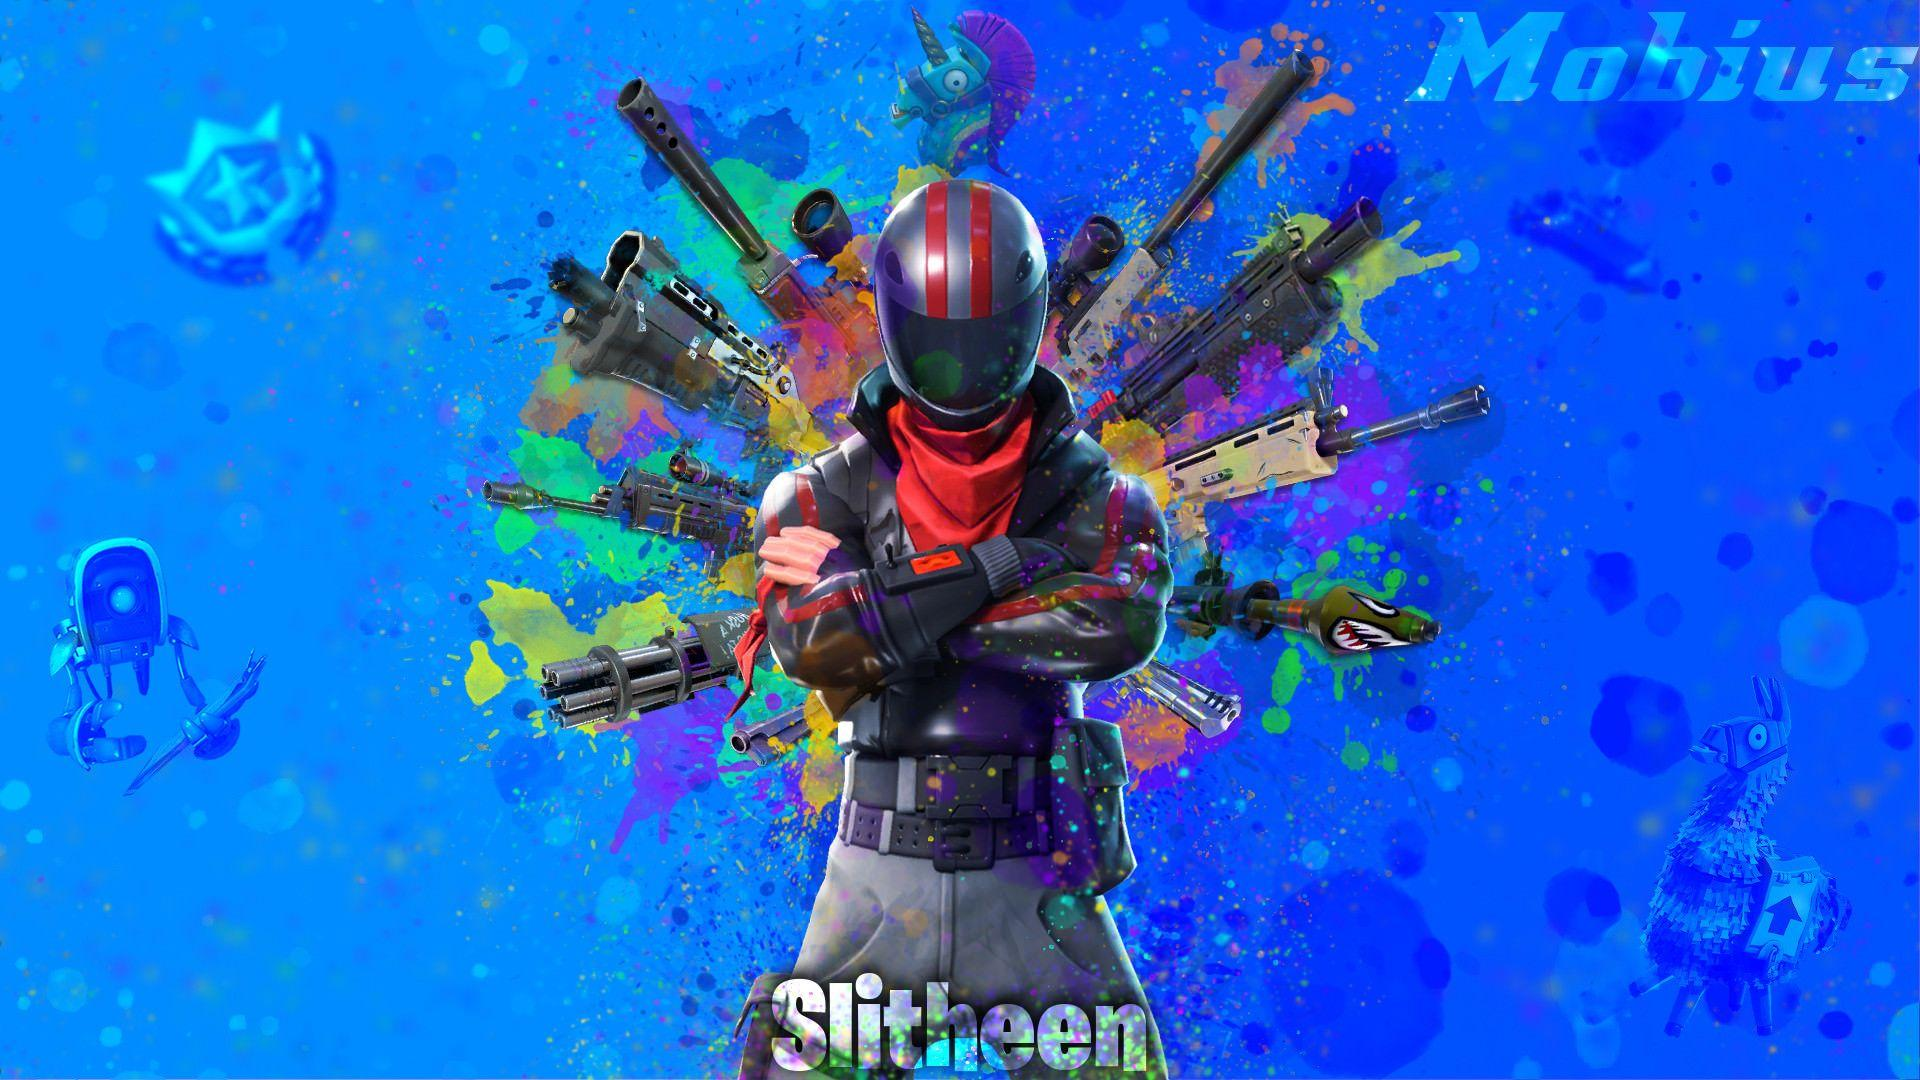 Fortnite Wallpapers 1080p > Flip Wallpapers > Download Free Wallpapers HD